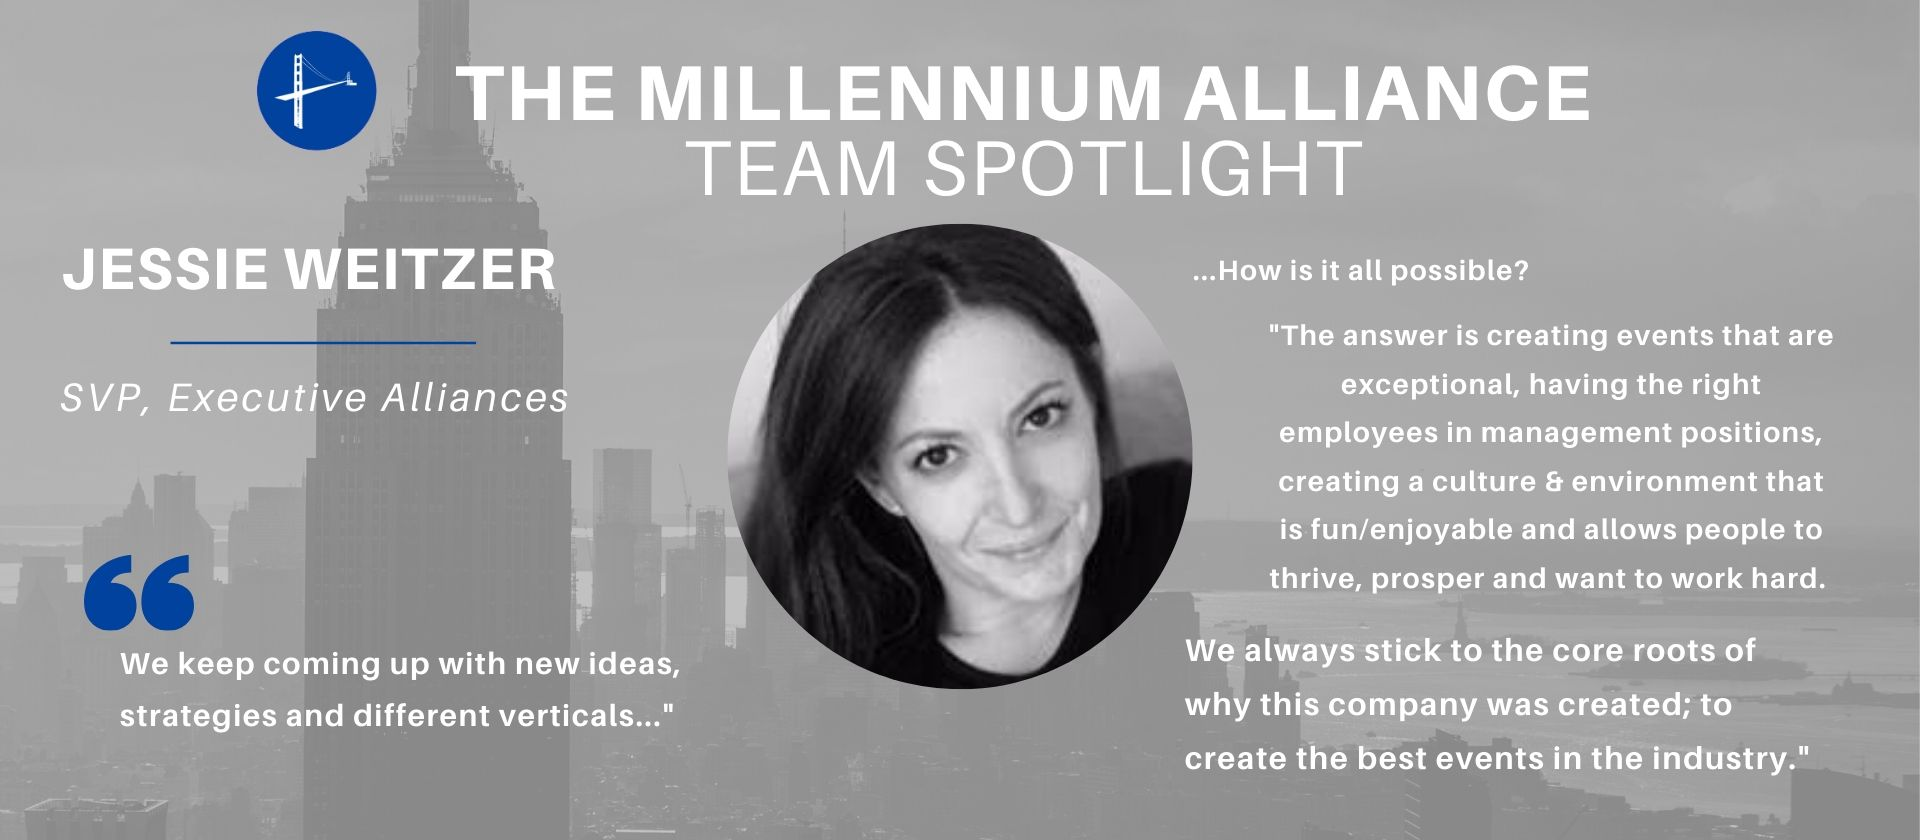 Team Spotlight Jessie Weitzer Millennium Alliance